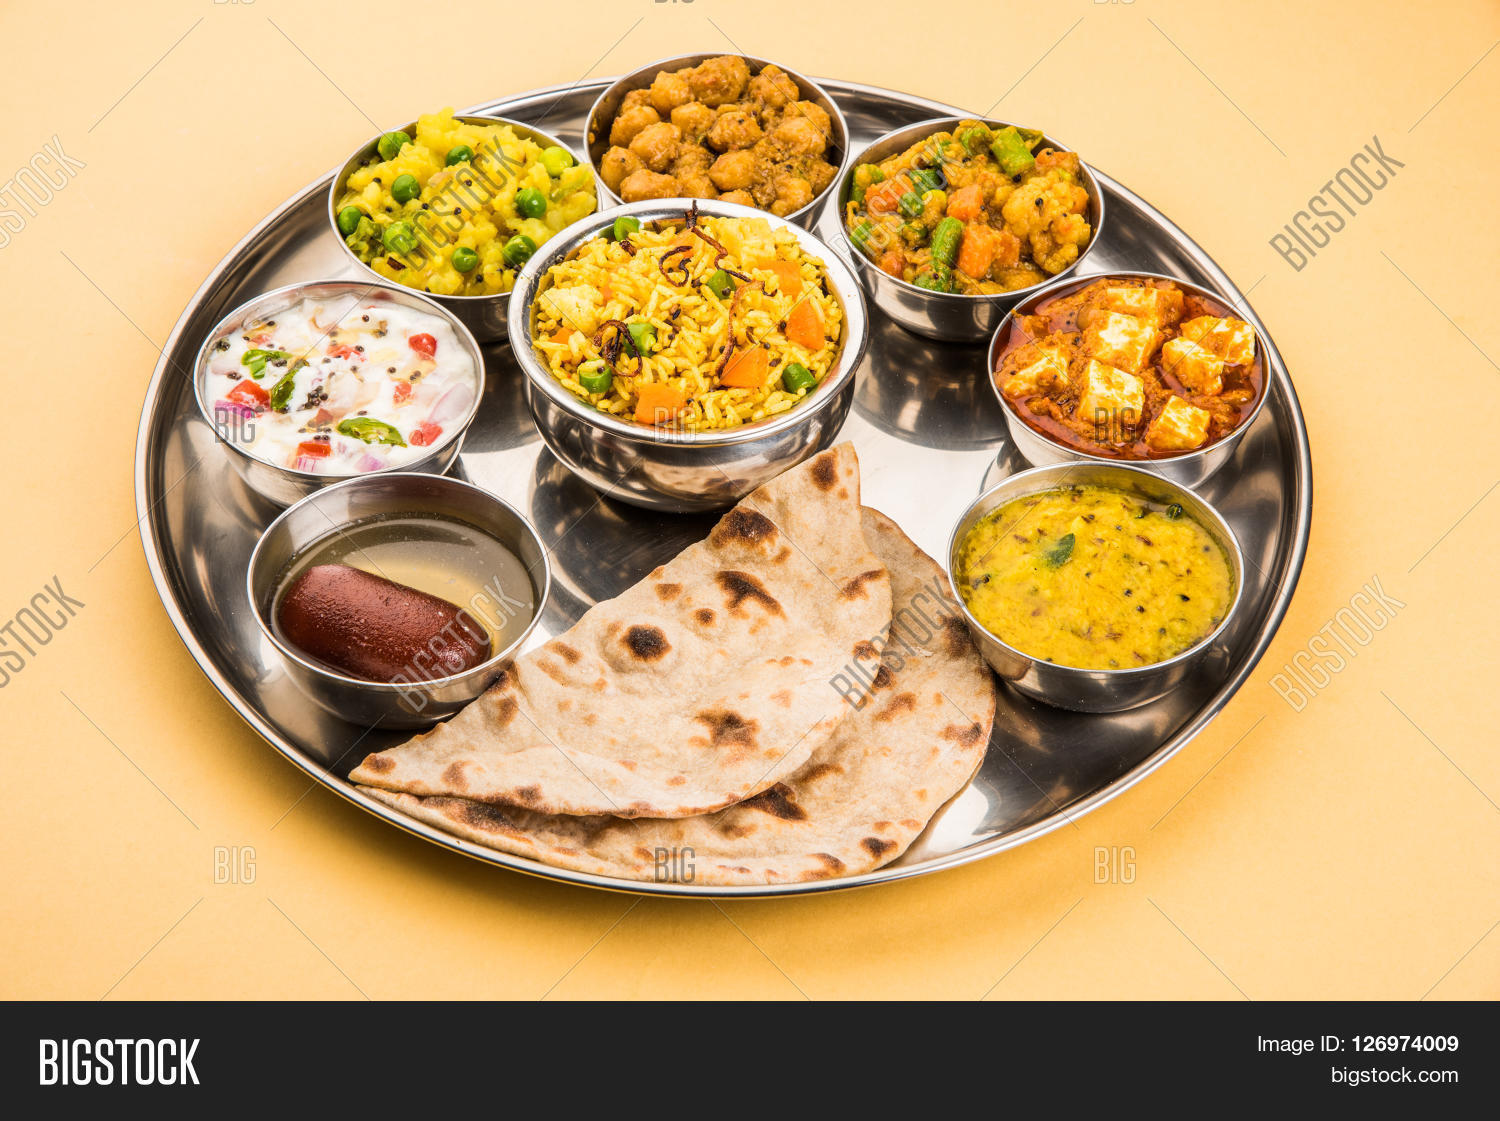 Group Indian Food Image Photo Free Trial Bigstock